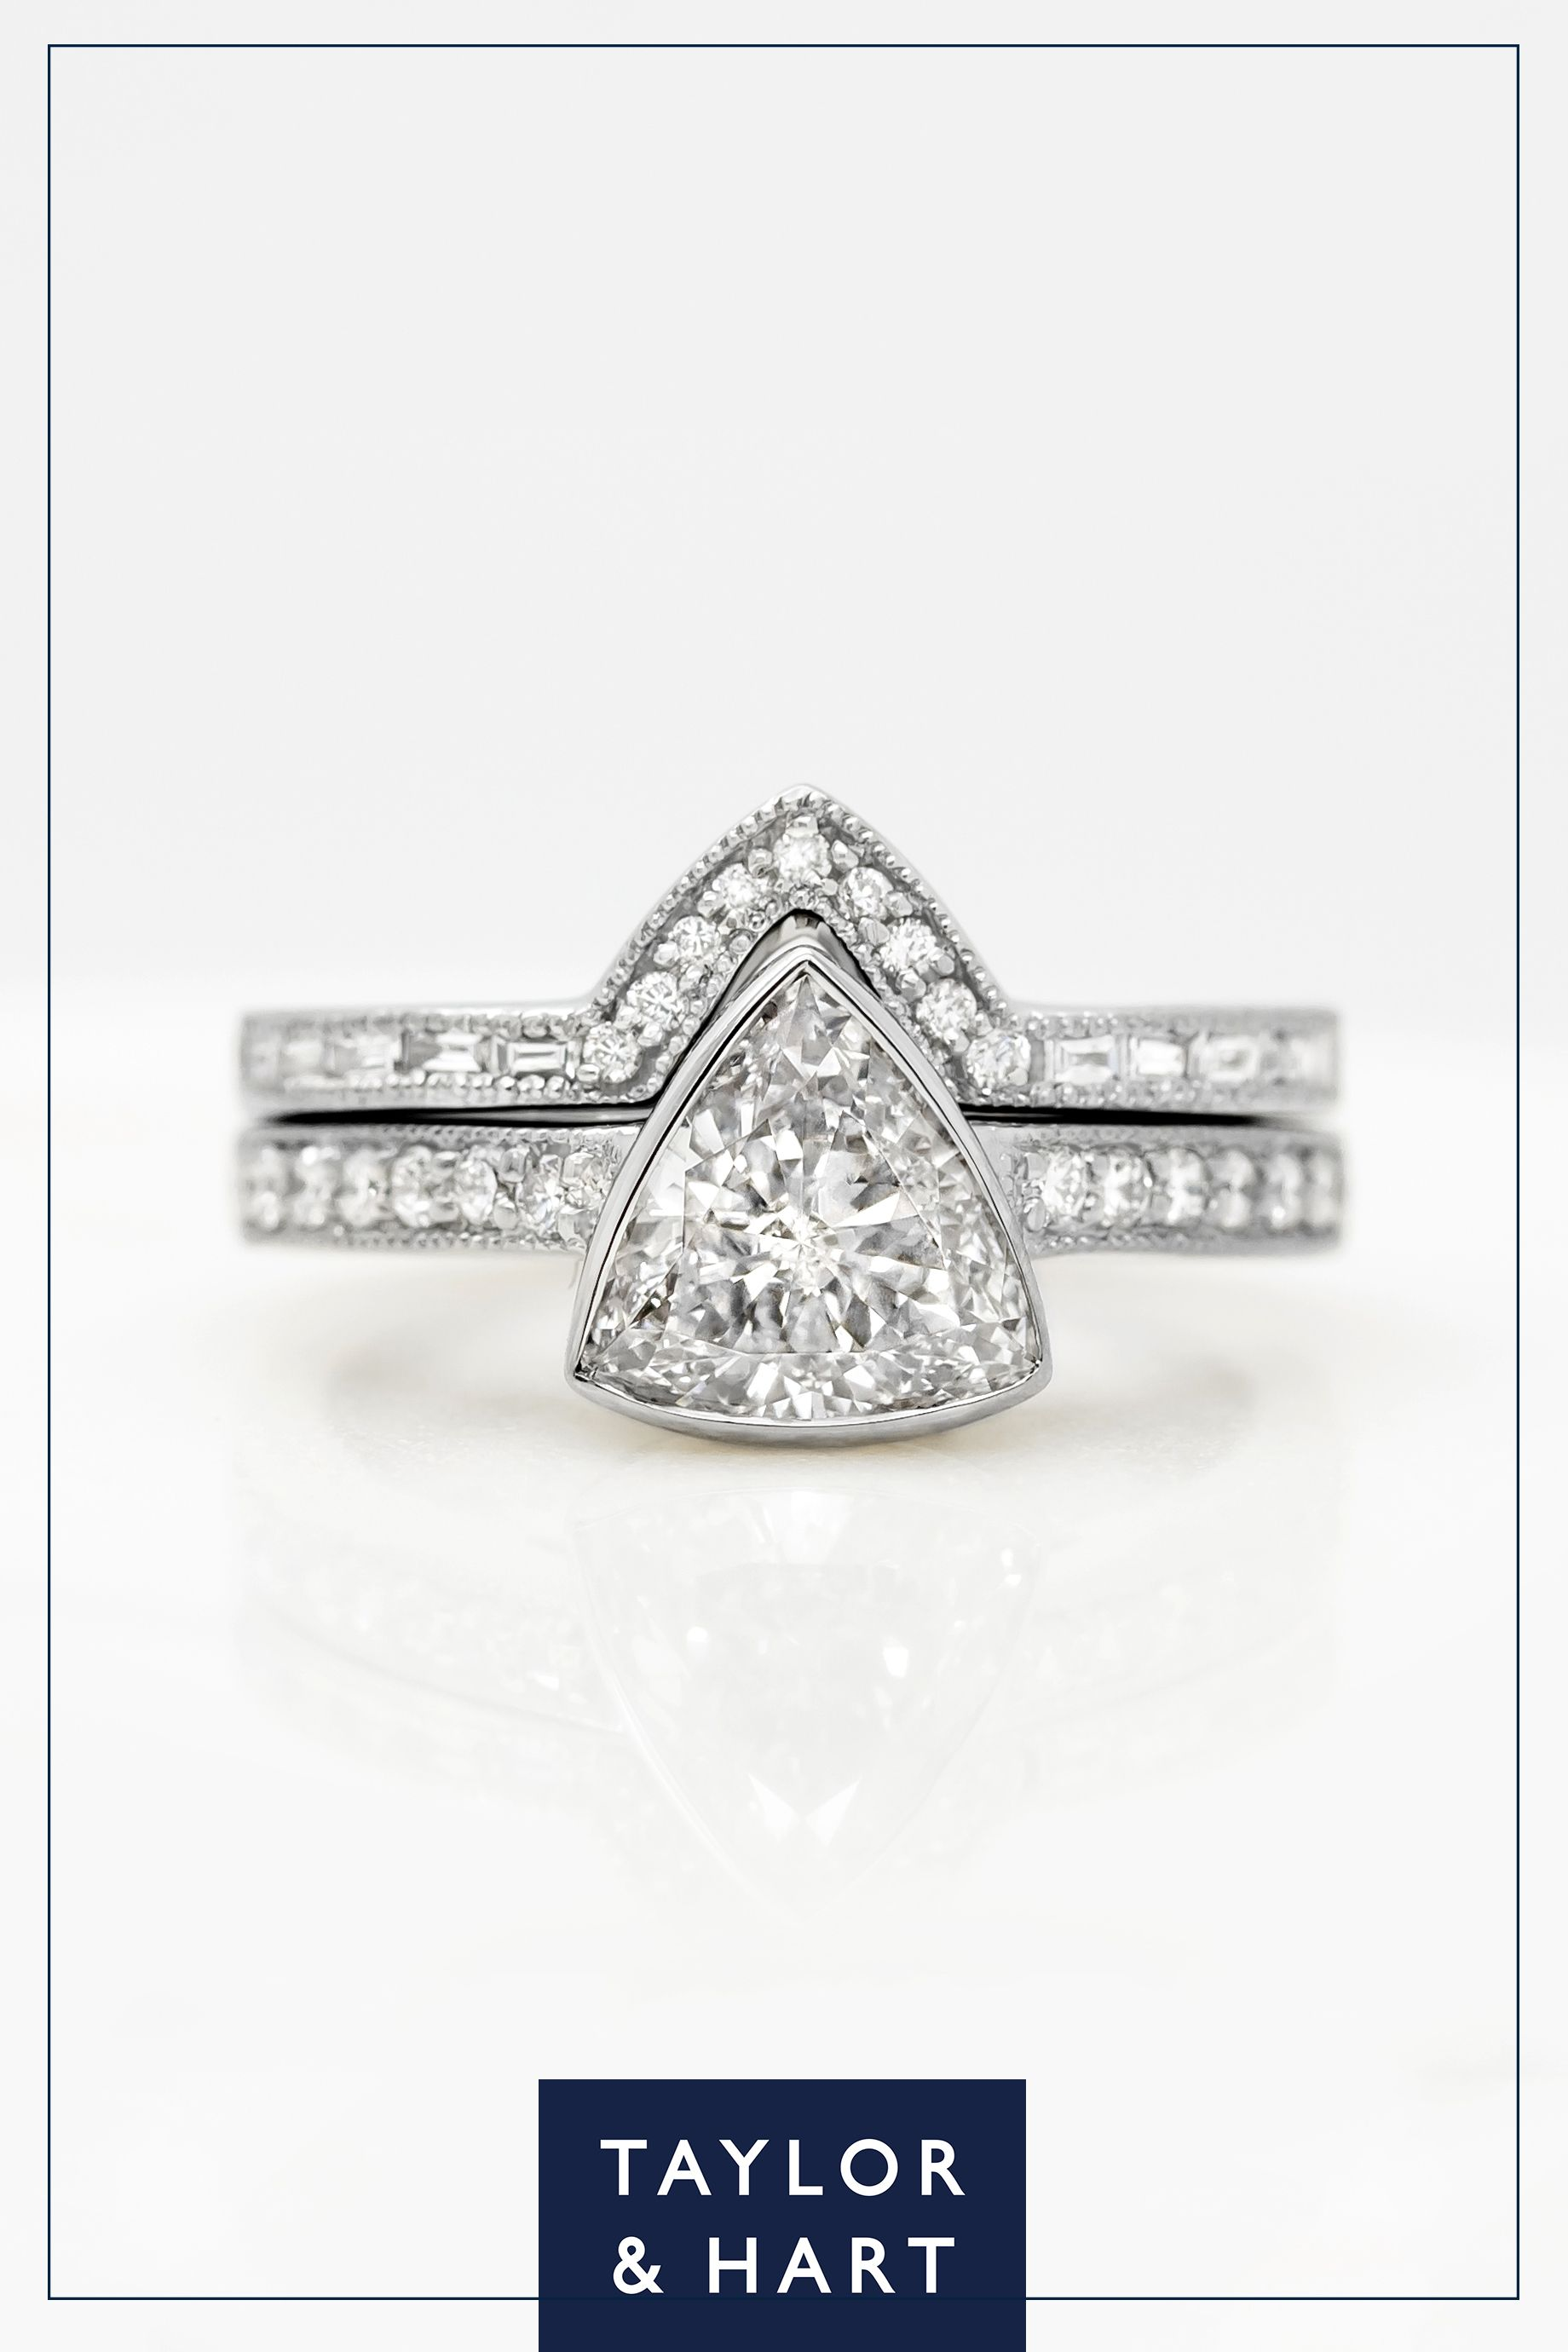 engagement accessory triangular diamond pinterest pin eb ring rings